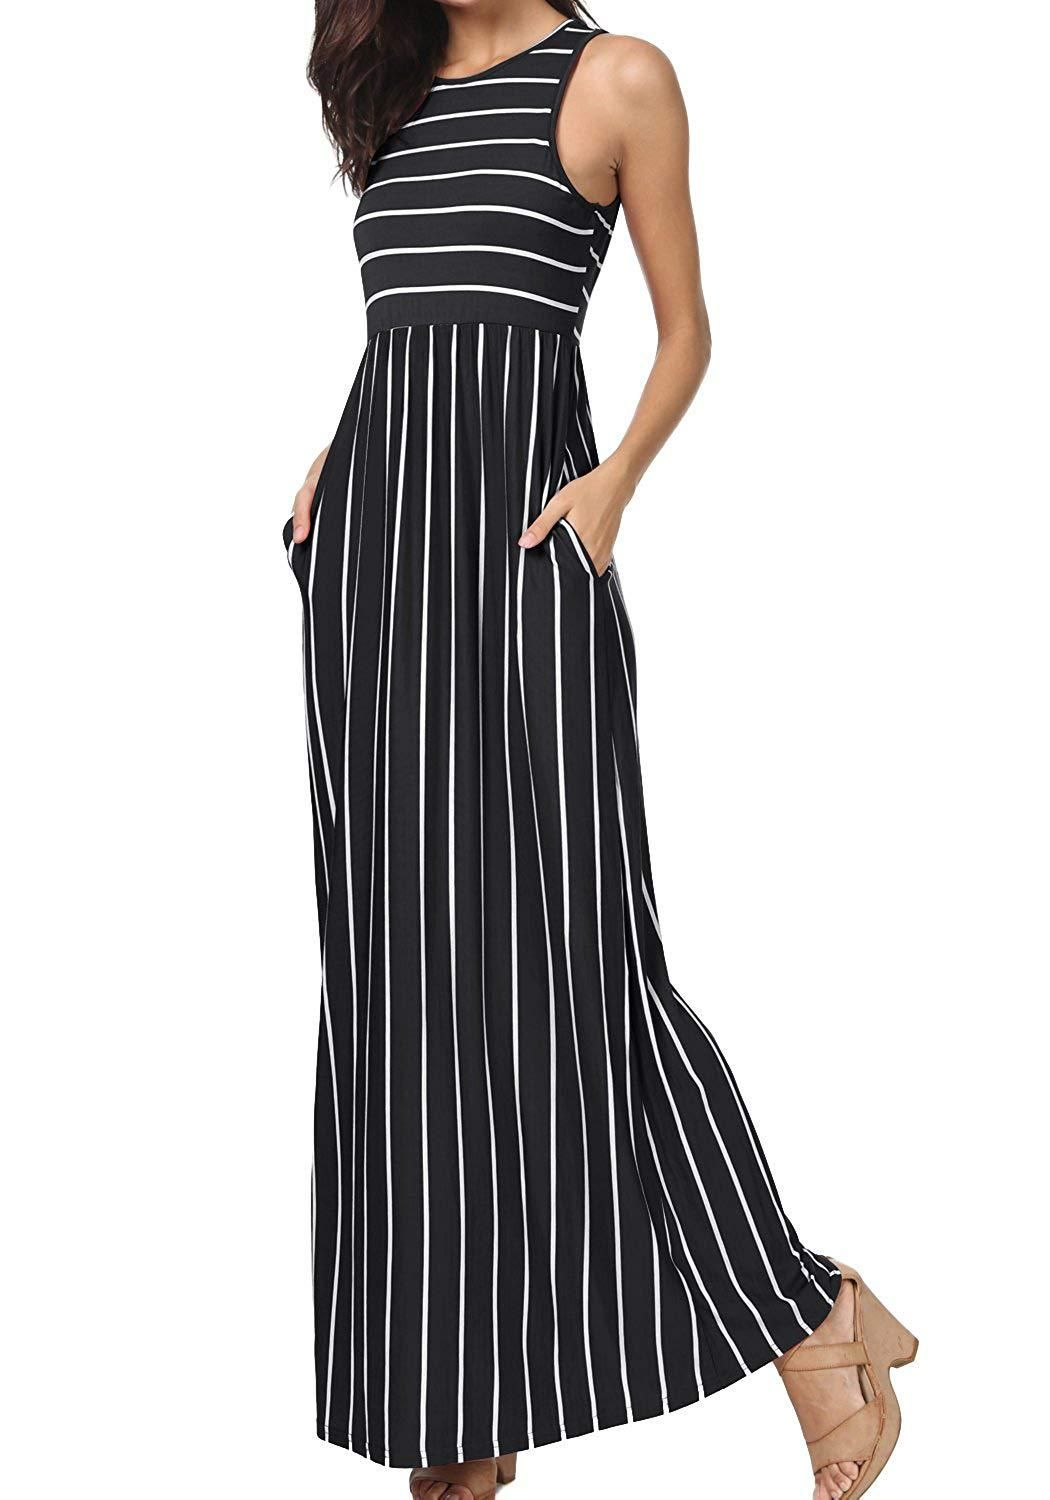 7acc593459c1 levaca Womens Summer Sleeveless Striped Pockets Flowy Casual Long Maxi Dress  at Amazon Womens Clothing store -- Amazon Affiliate link.